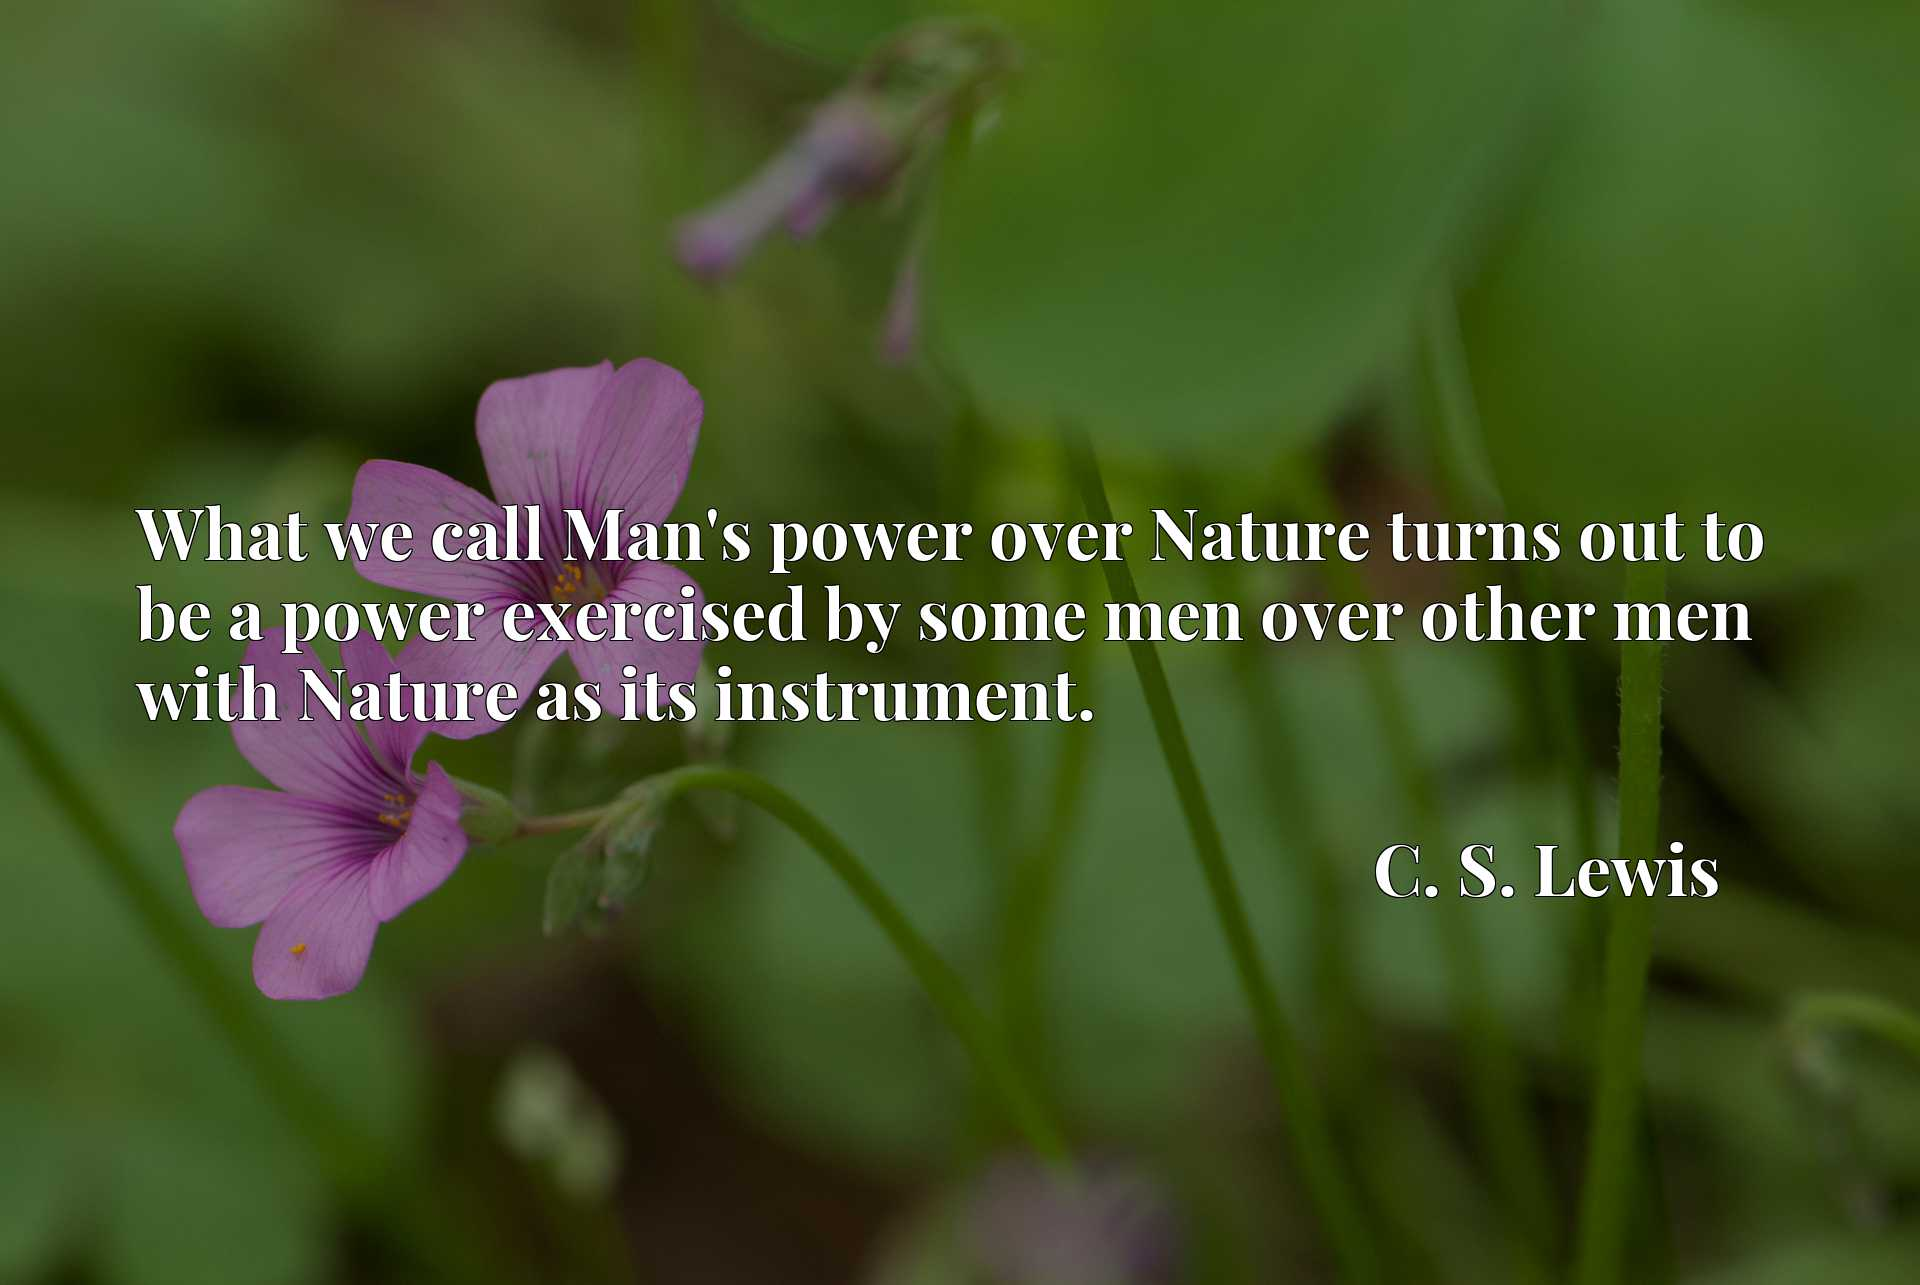 What we call Man's power over Nature turns out to be a power exercised by some men over other men with Nature as its instrument.